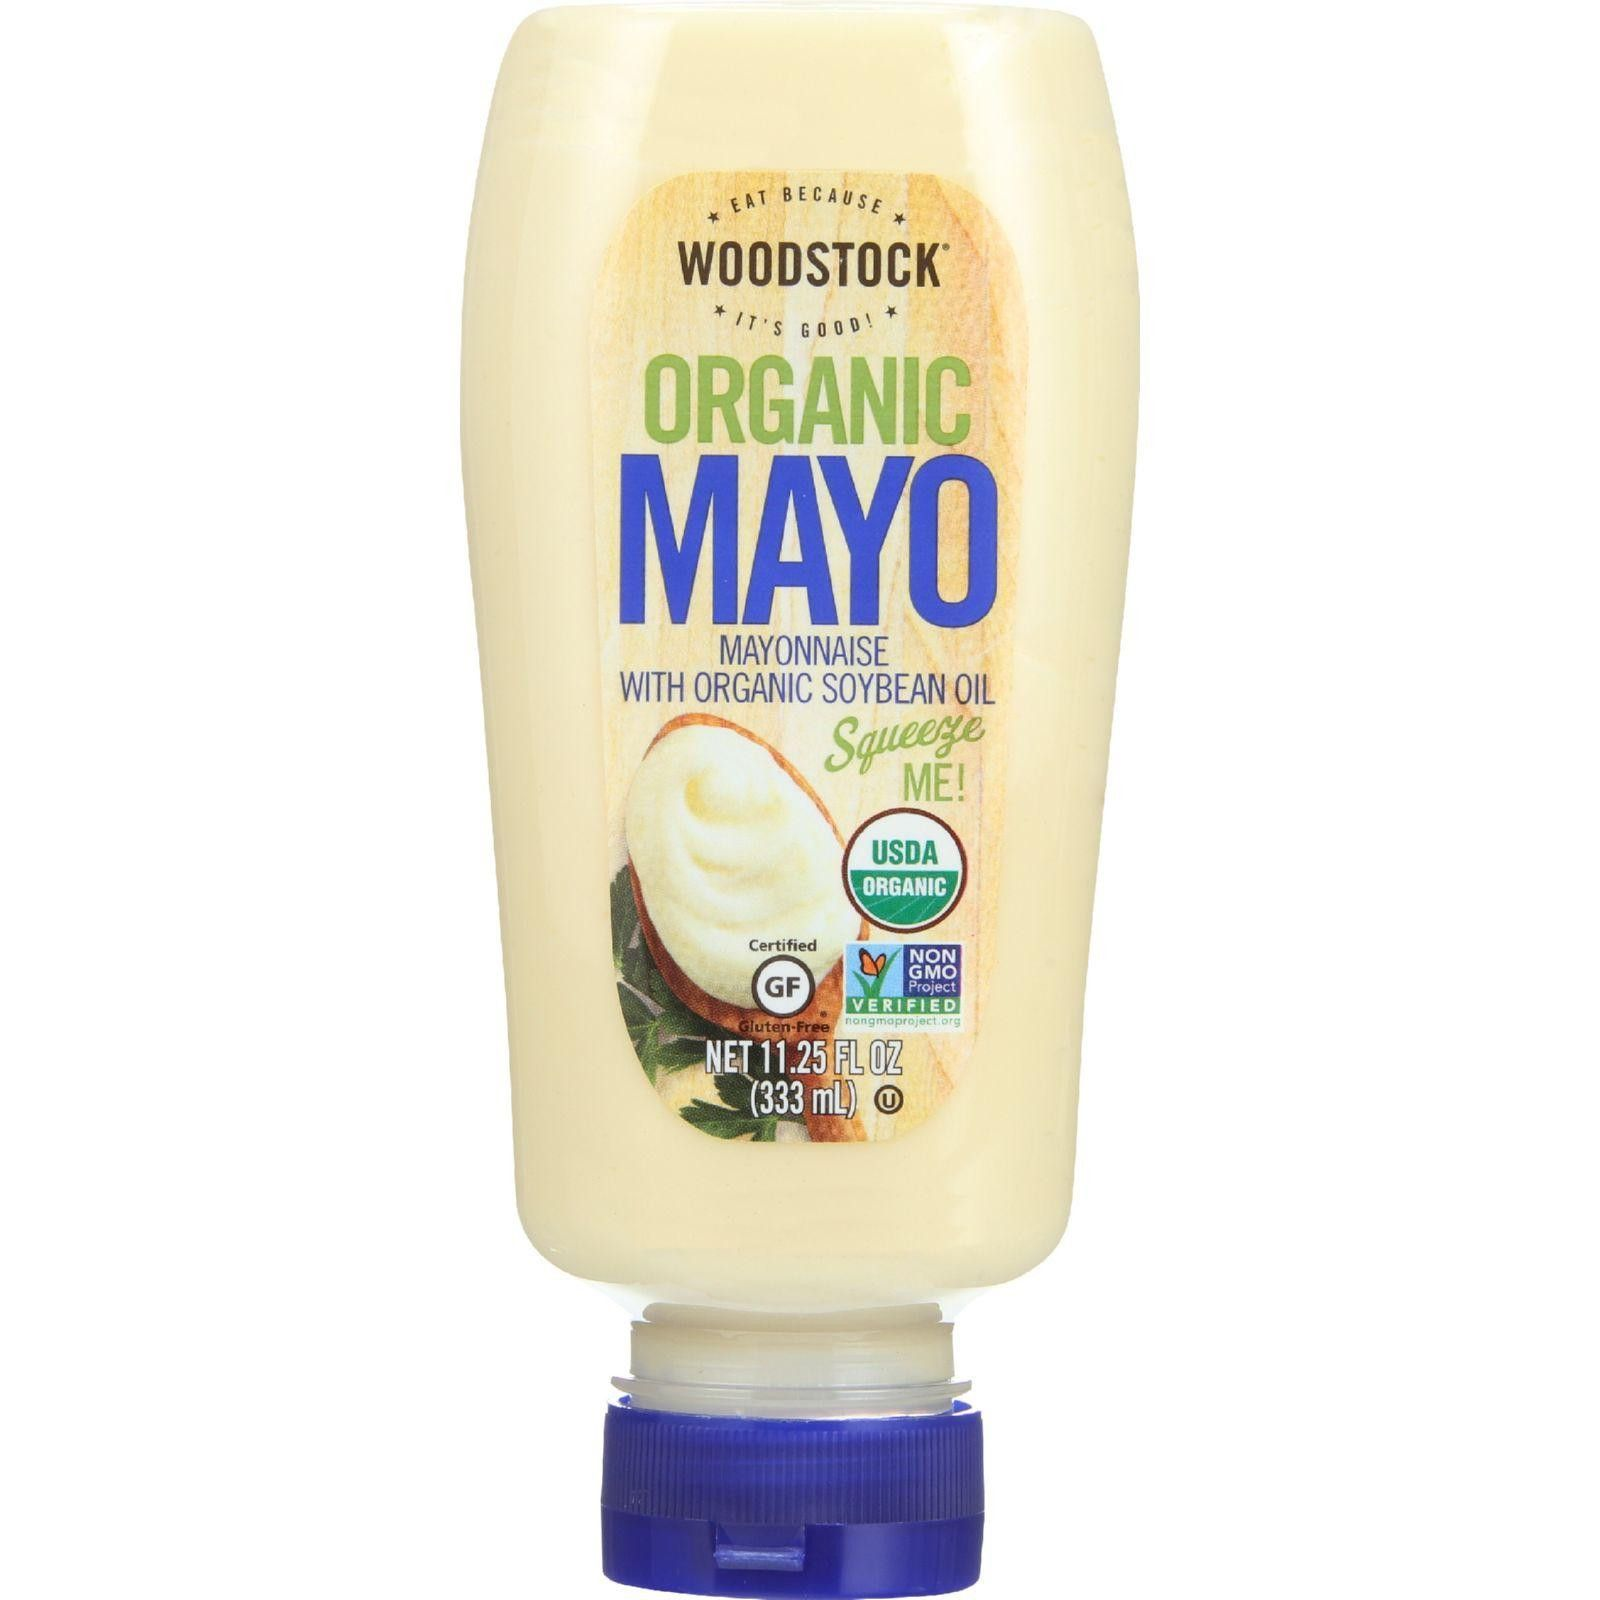 Woodstock Mayonnaise - Organic - With Organic Soybean Oil - Squeezable - 11.25 Oz - Case Of 12  #inspiredbeacon #organic #love  #GlutenFree #Kosher #95%+Organic #SoupsAndSauces #FoodBeverages